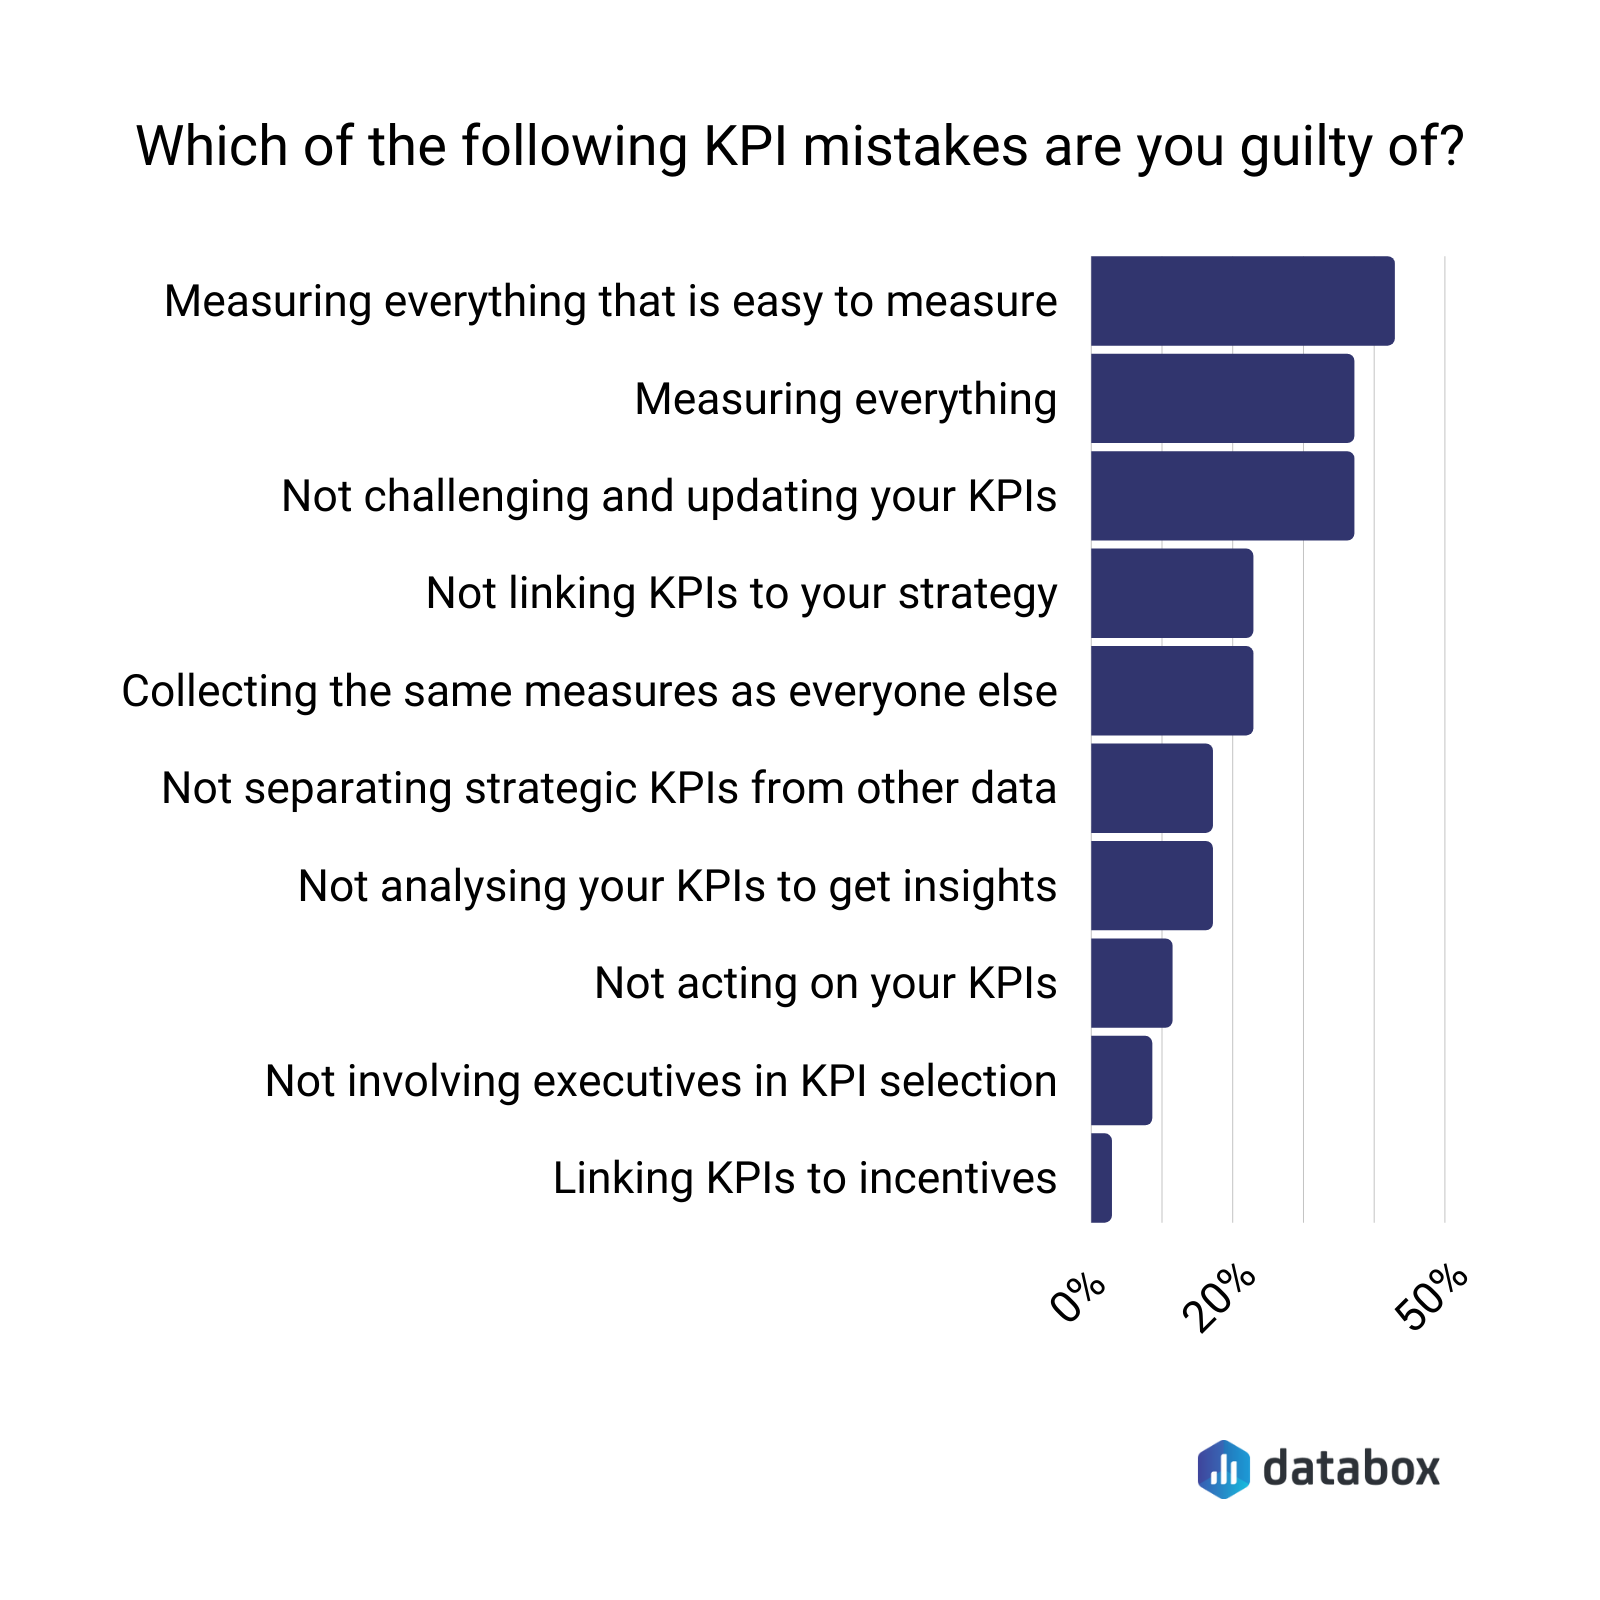 Most common KPI mistakes